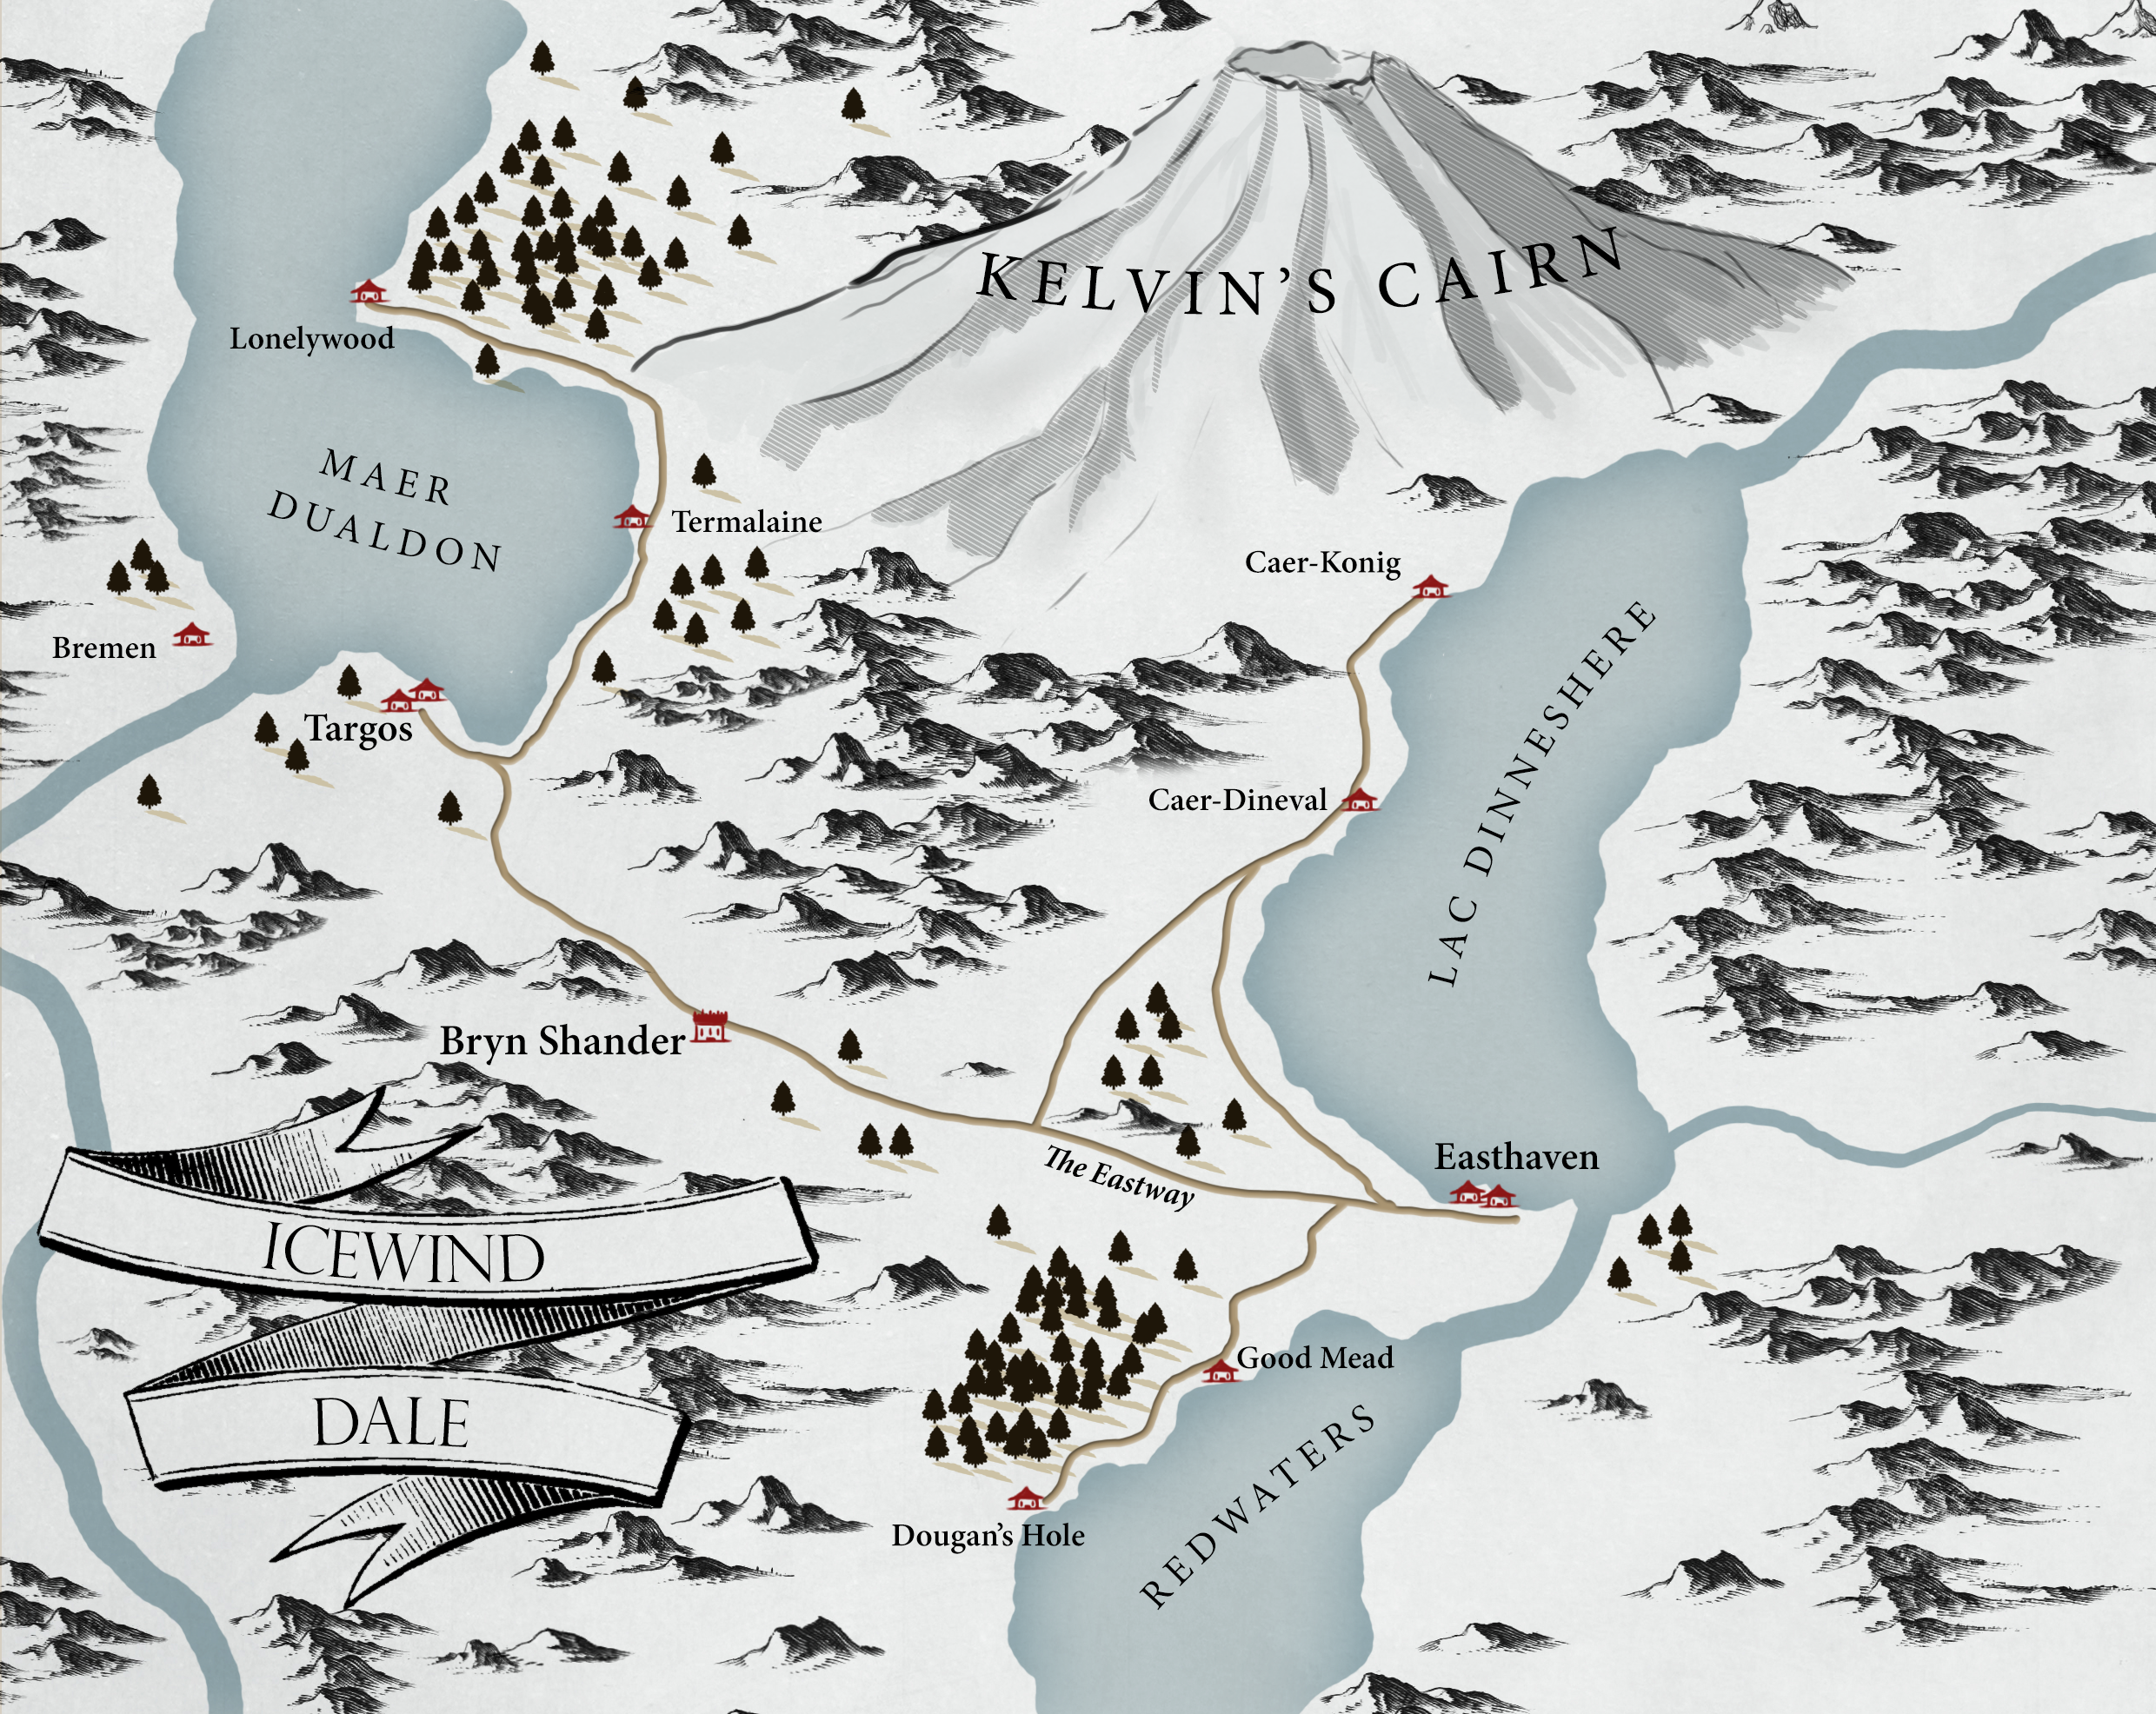 Icewind Dale Map From Reddit 1